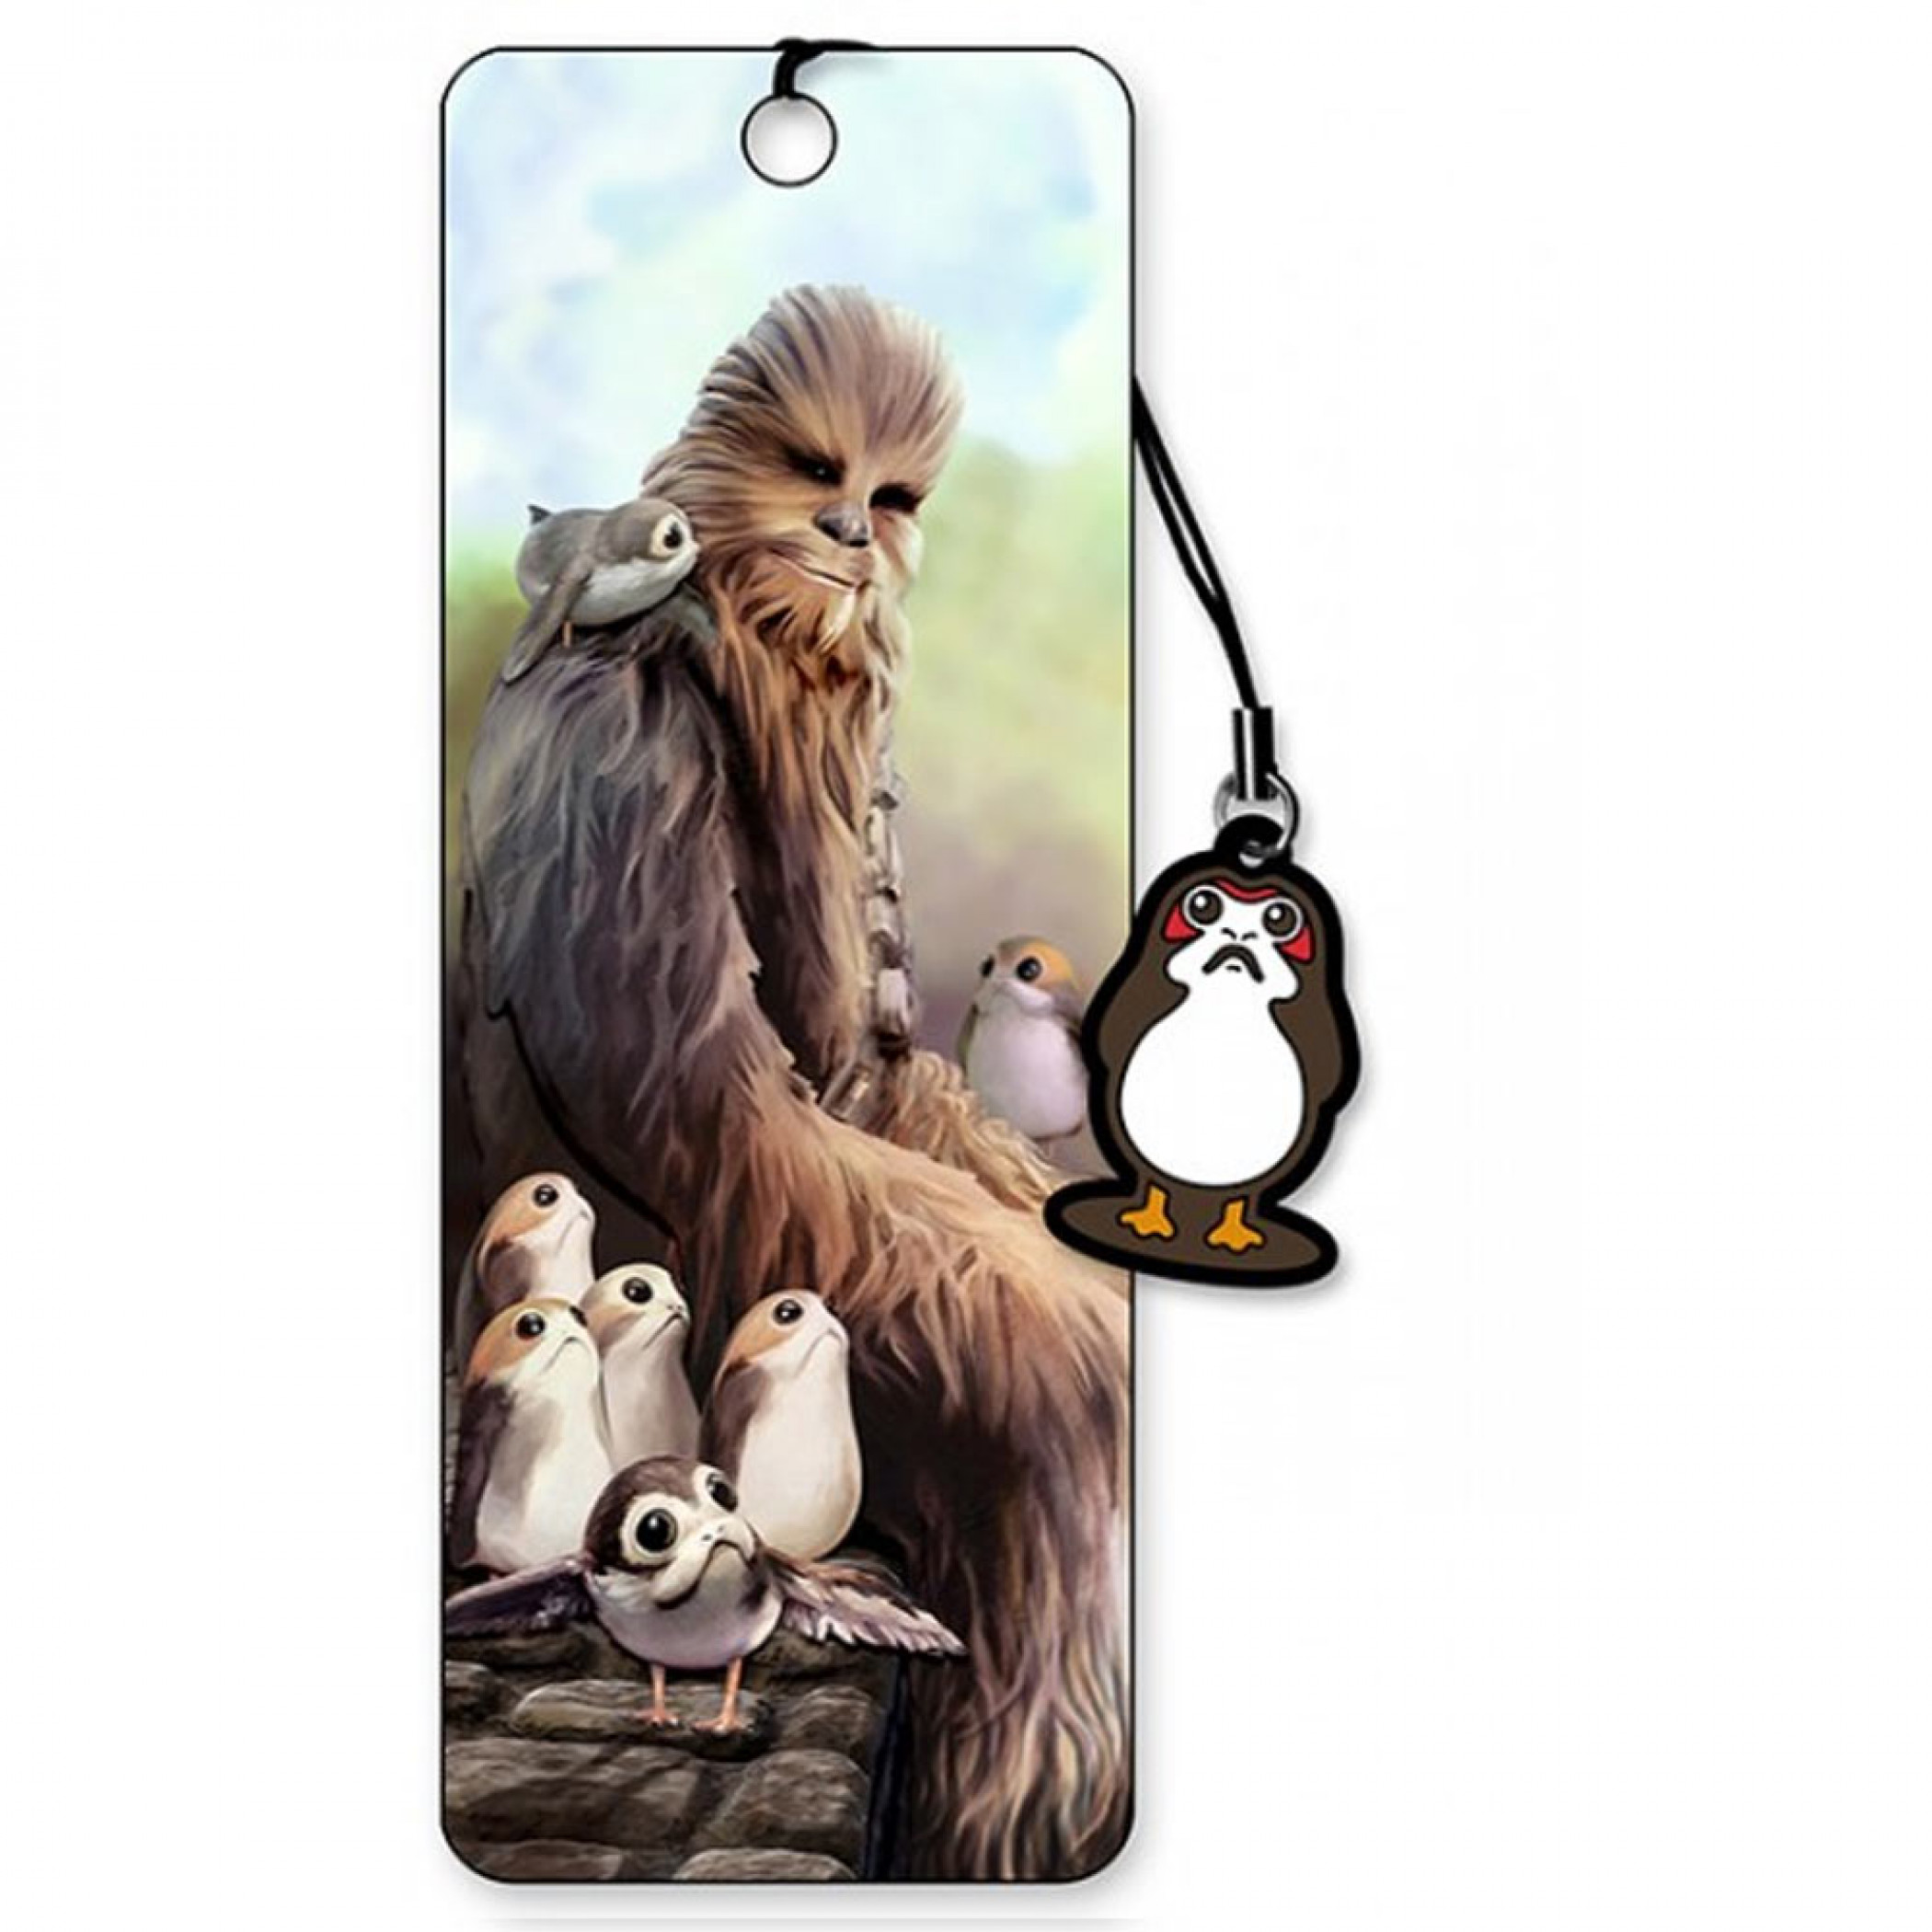 Chewbacca 3D Moving Image Bookmark